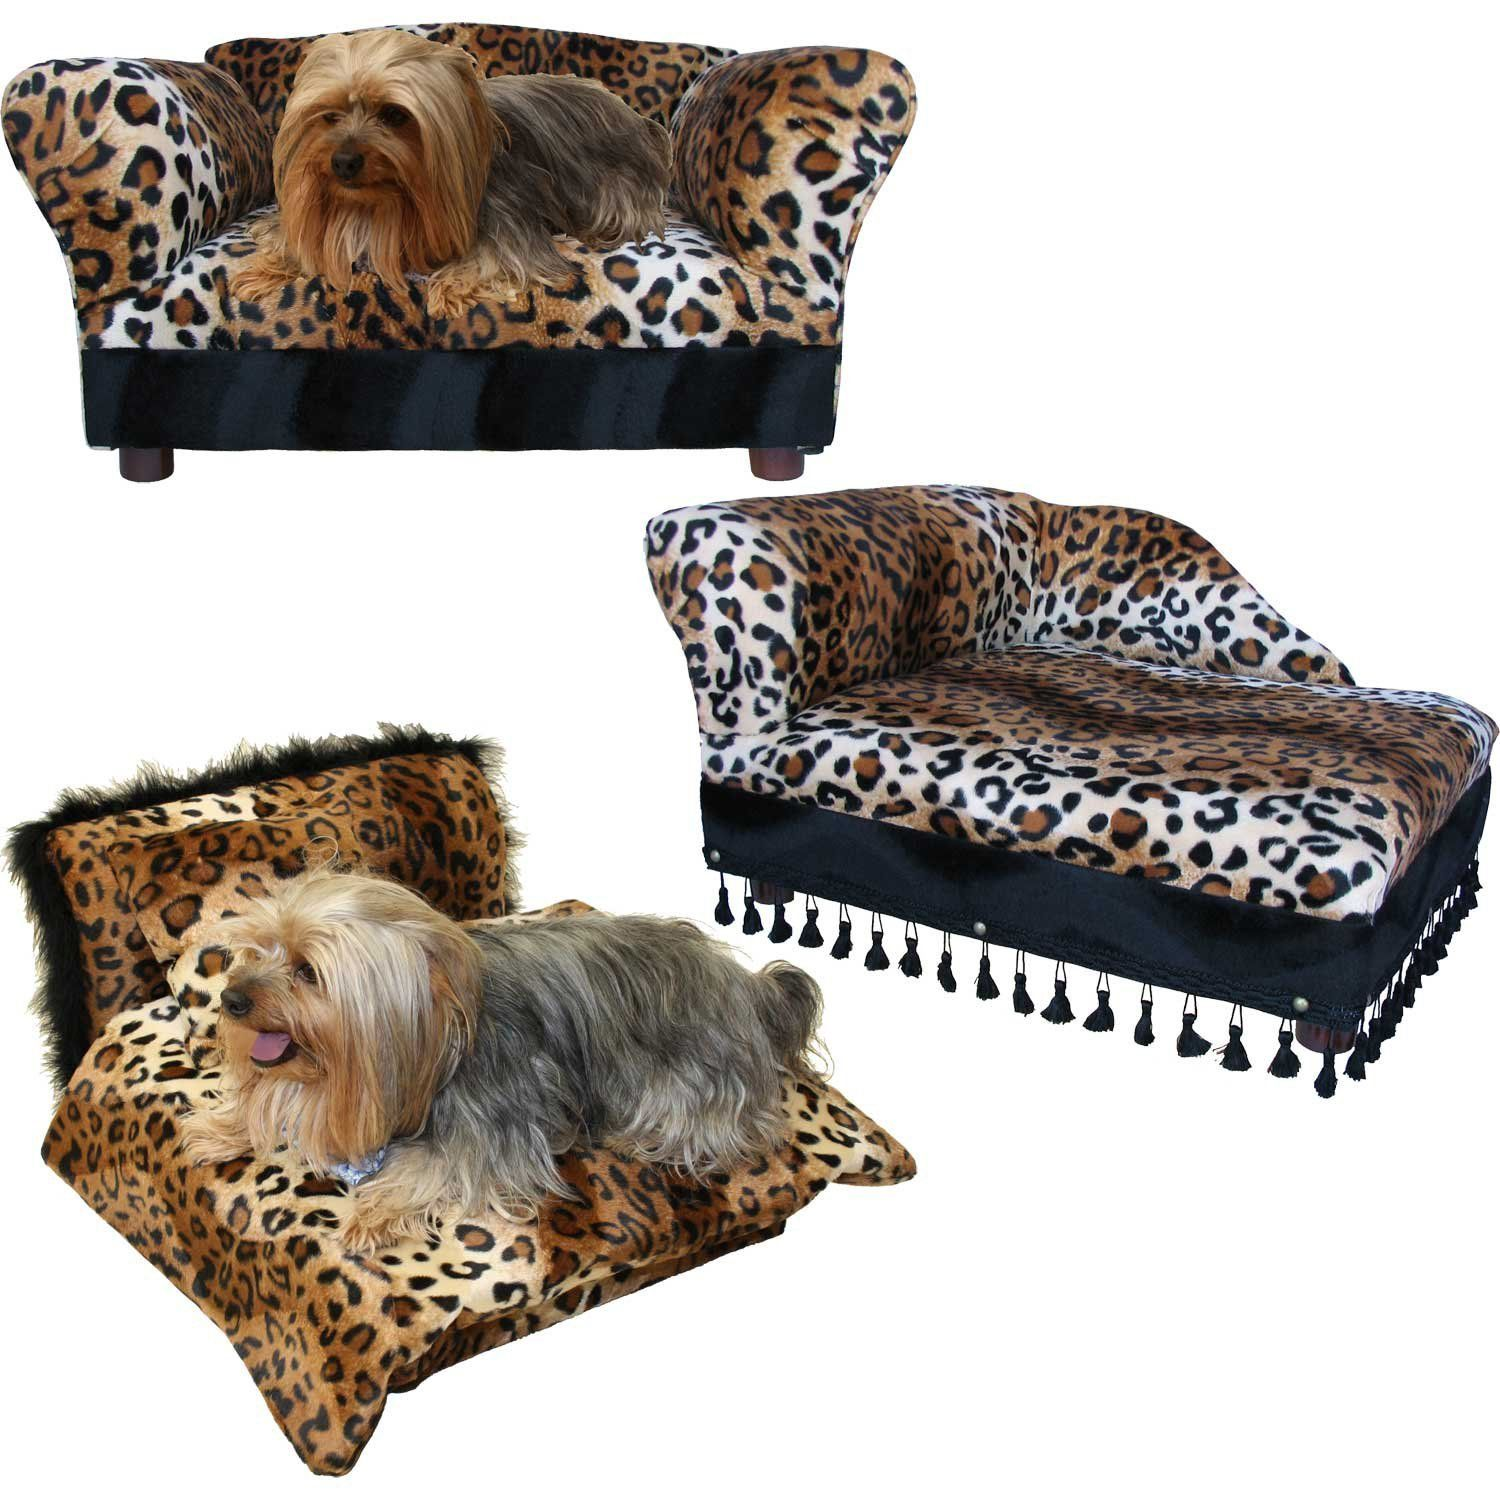 Dog beds that look like couches - Top 25 Ideas About Unique Unusual Cat Beds On Pets Enchanted Home Pet Library Sofa